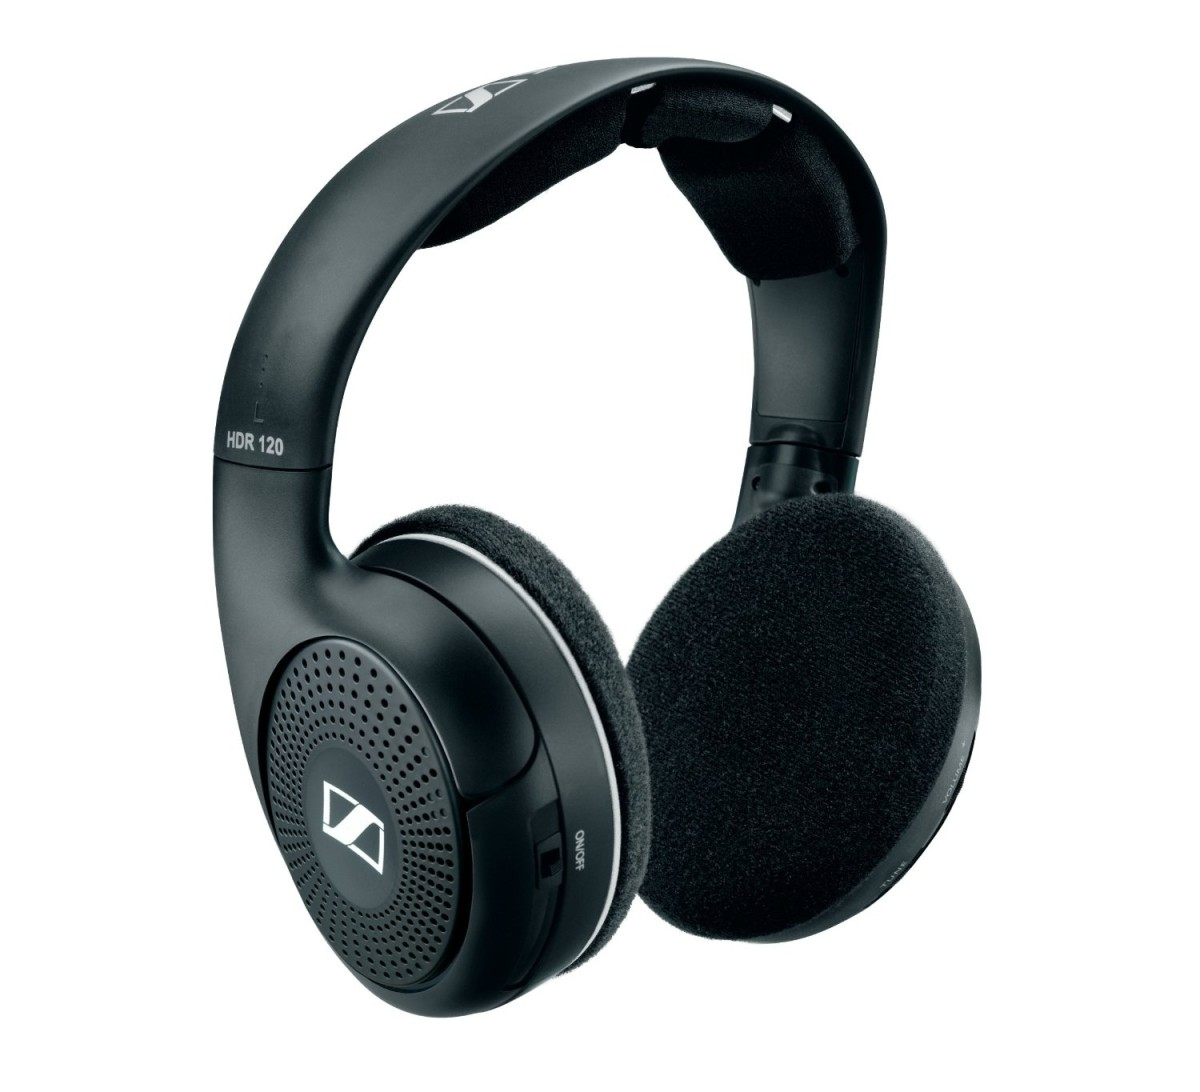 Wireless headphones - 2013 Best Gifts for Men: Cool Gadgets Gift Ideas, by Rosie2010